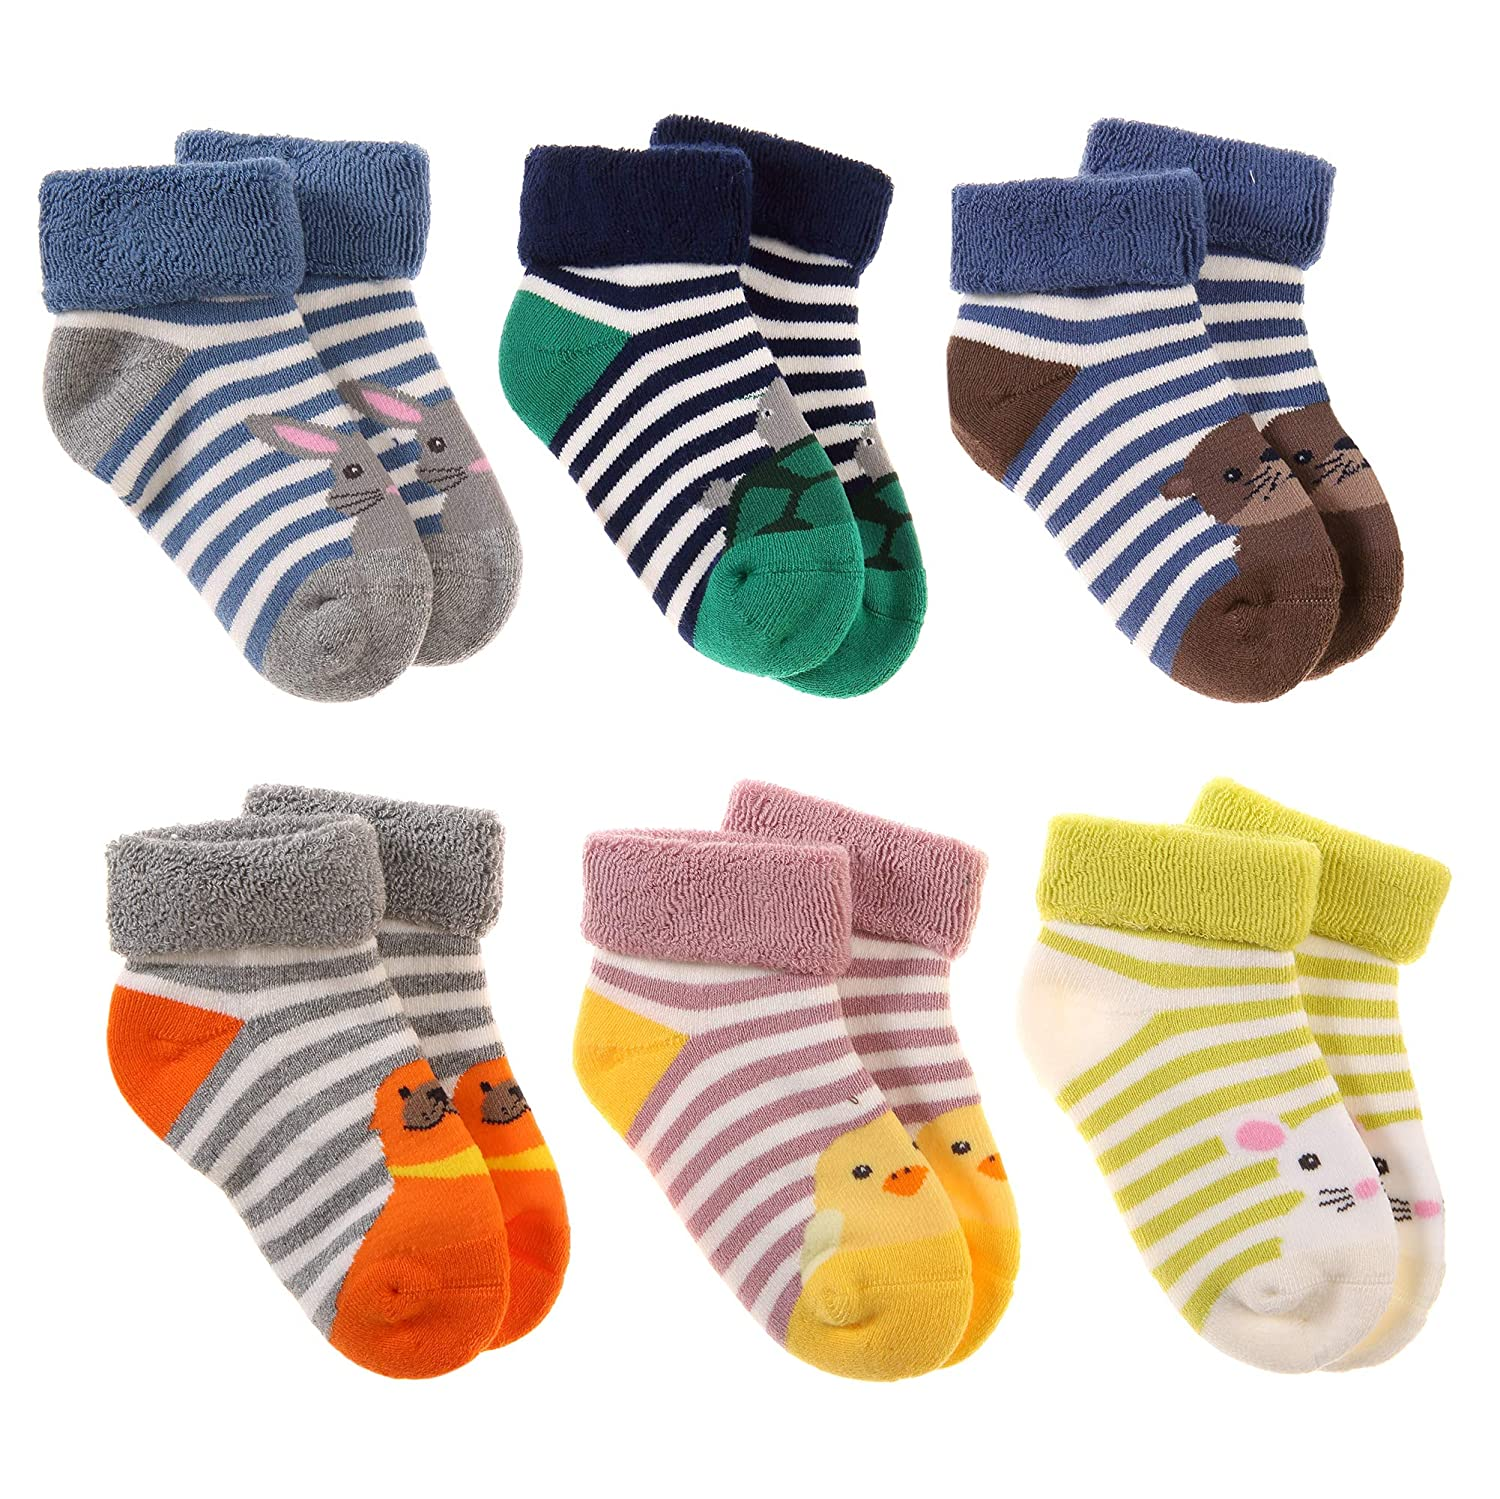 Baby Boy Girls Soft Warm Thick Cotton Kids Winter Socks Cute Animal Toddler Infant Socks 6 Pairs